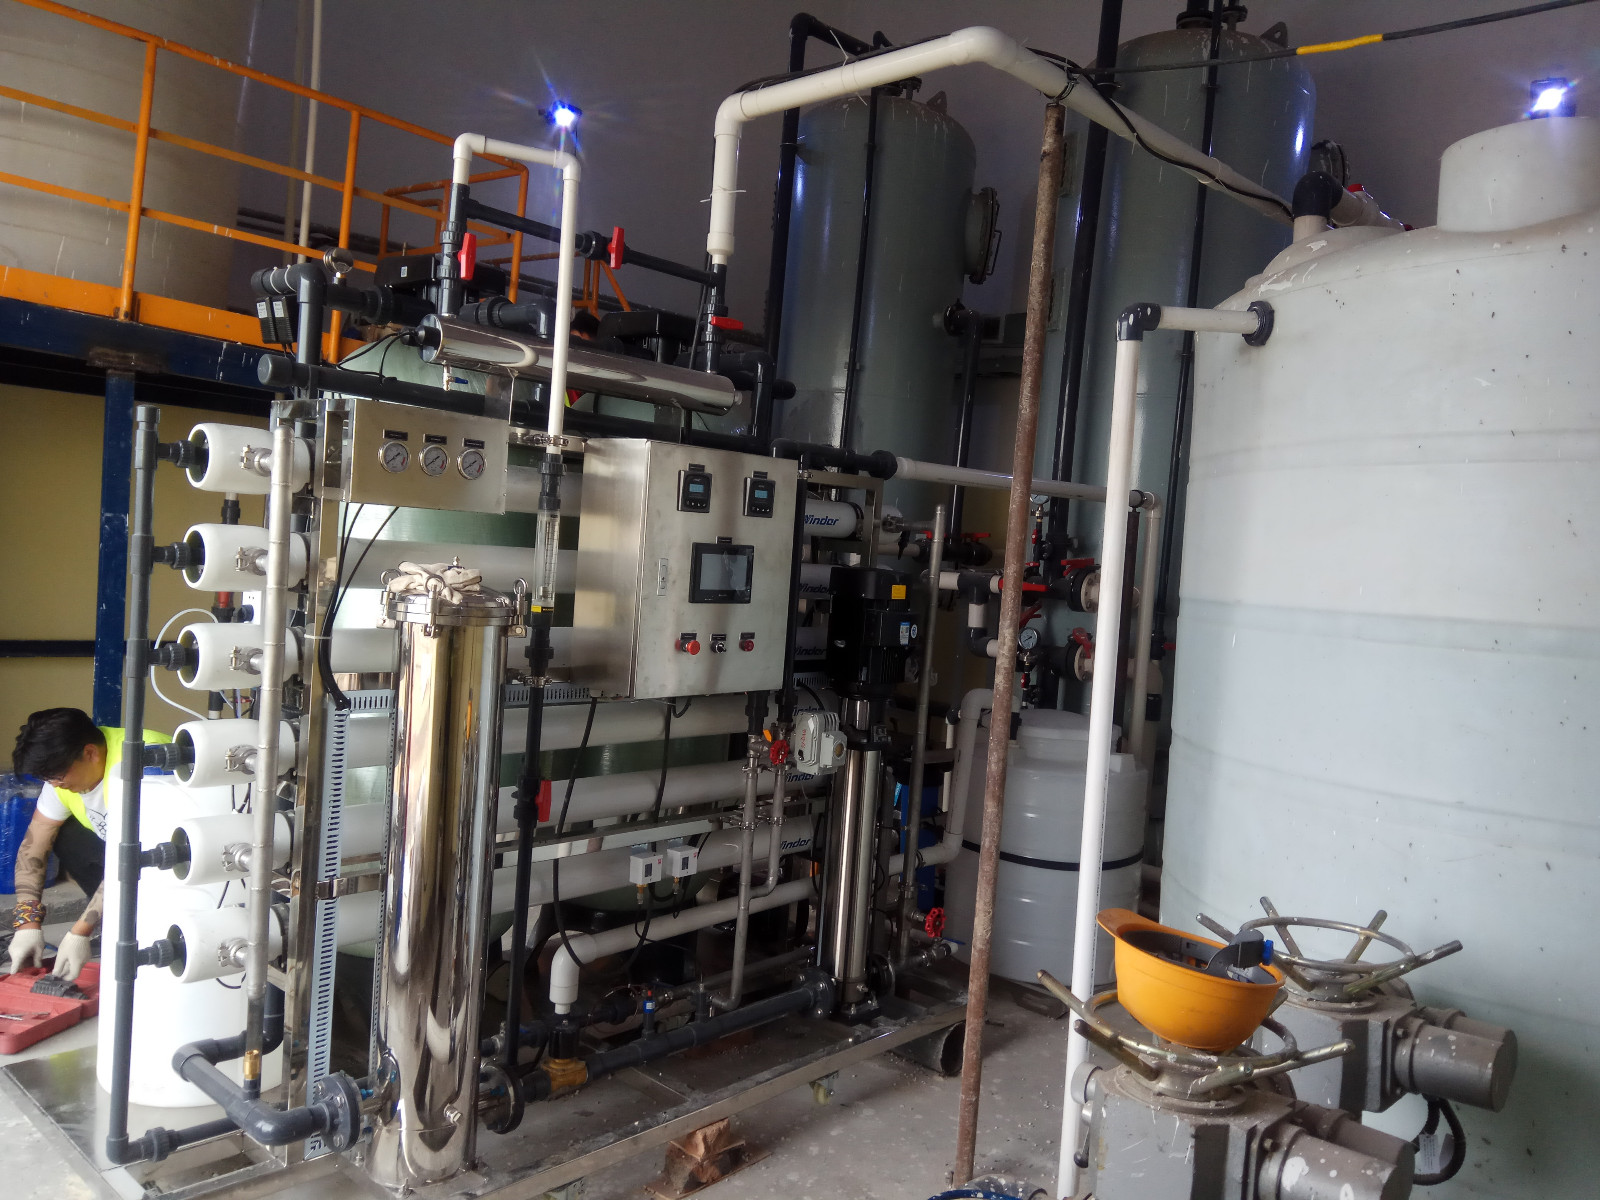 Ocpuritech-High-quality Deionized Water System | 2000liter Per Hour Ro System For-1